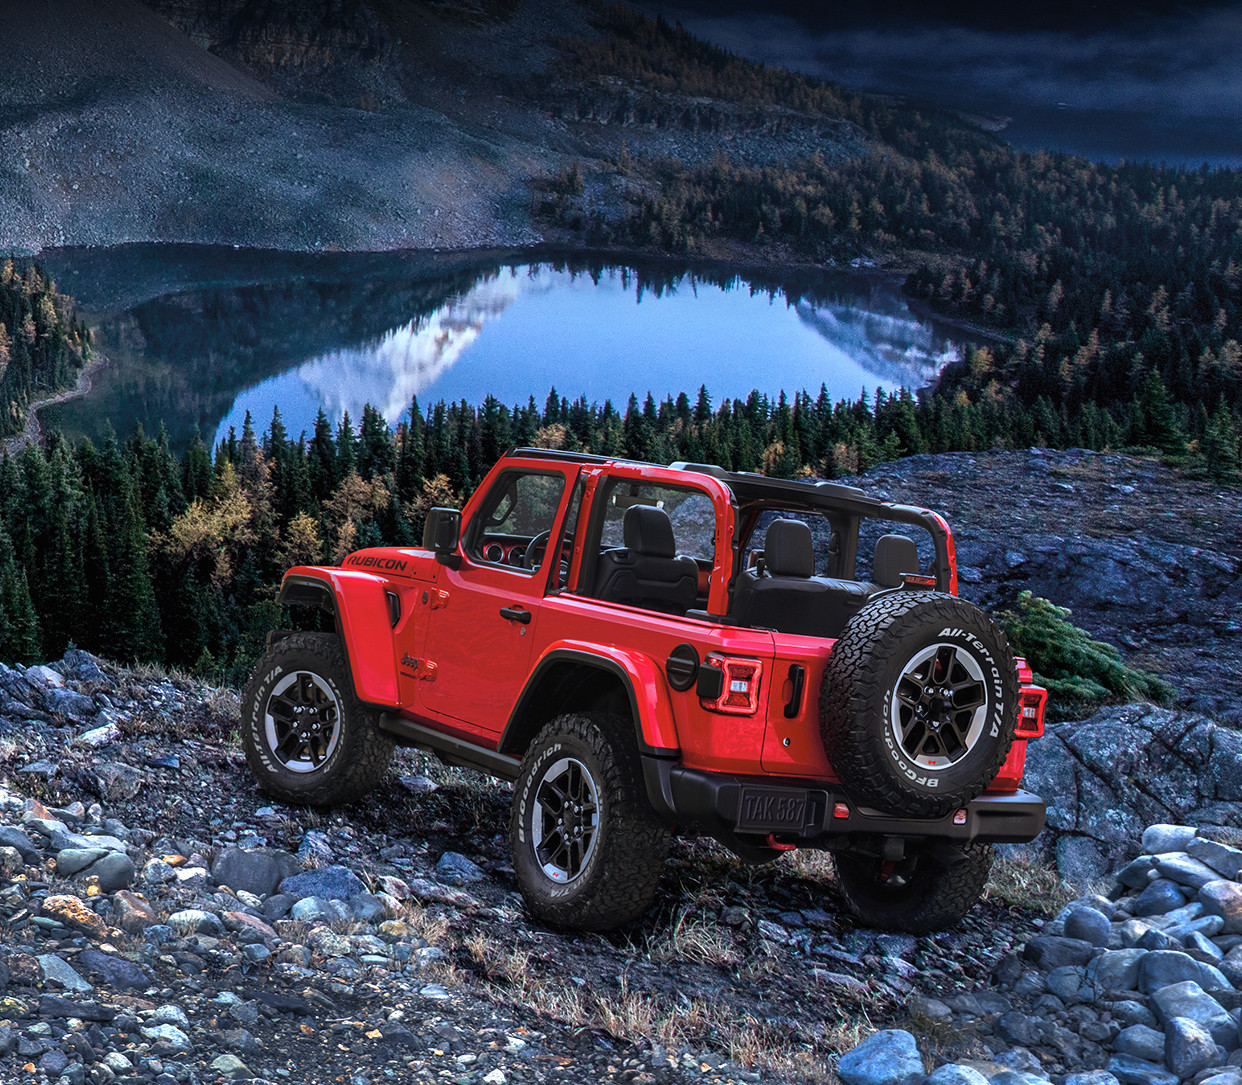 2019 Jeep Wrangler on river bed, shown in red